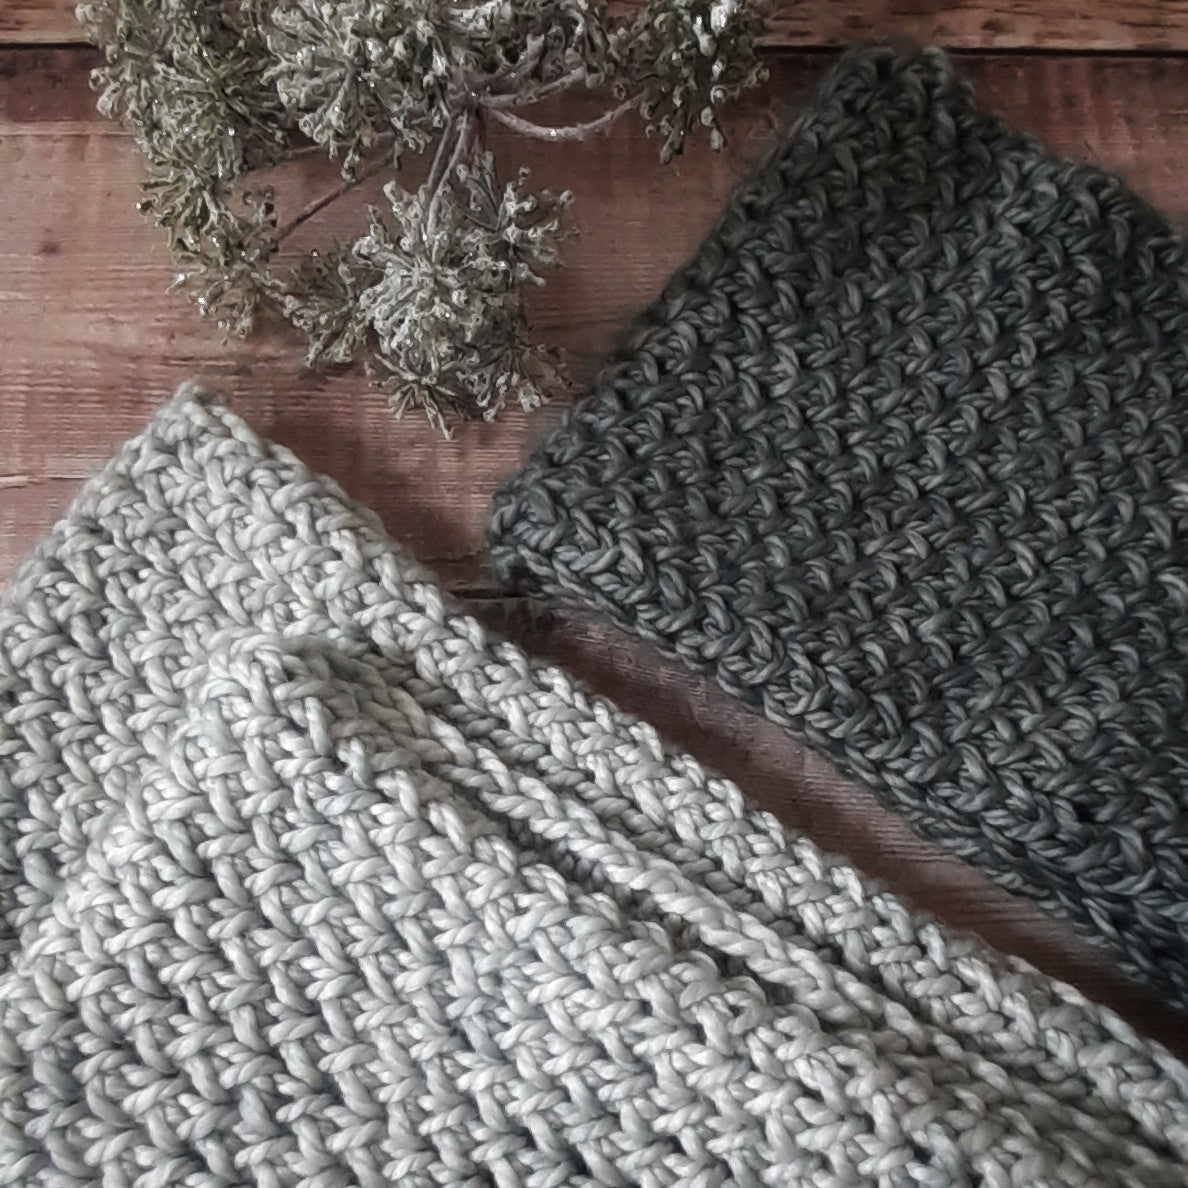 Sending Hugs cowl by Forest Flower Knits